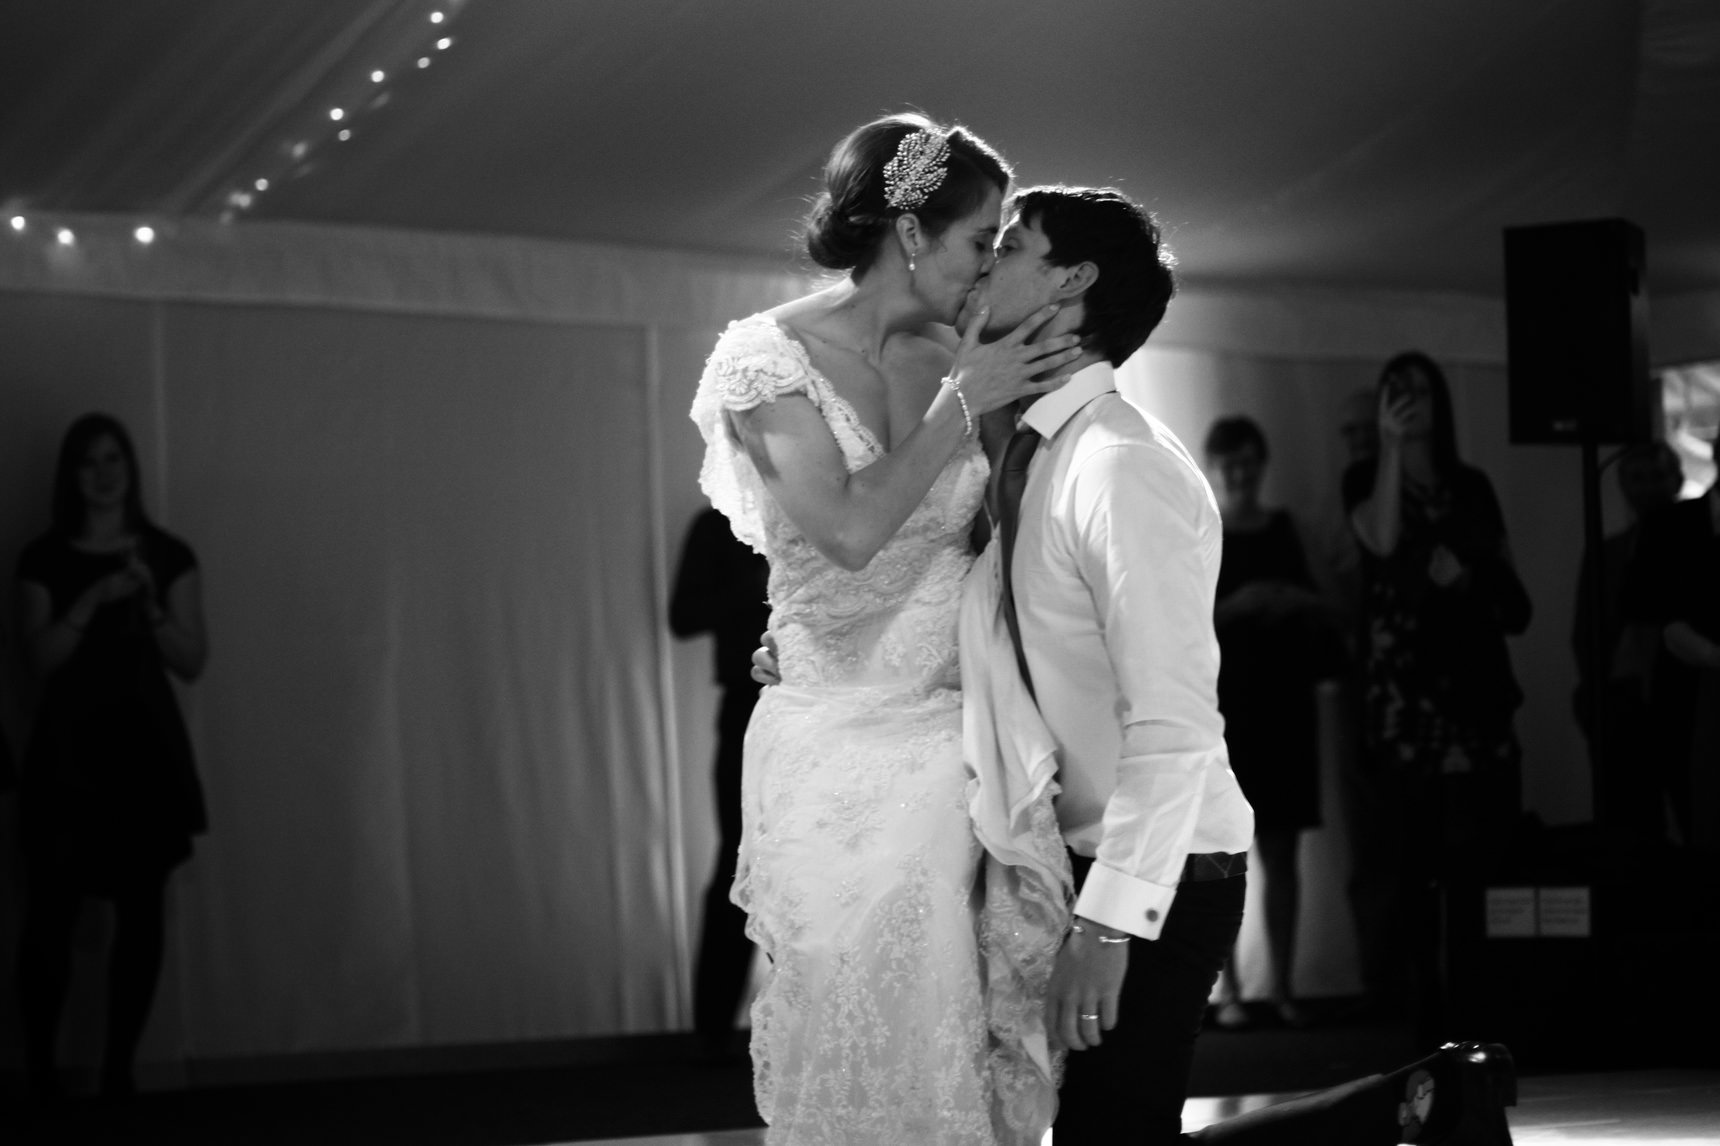 End of the first dance